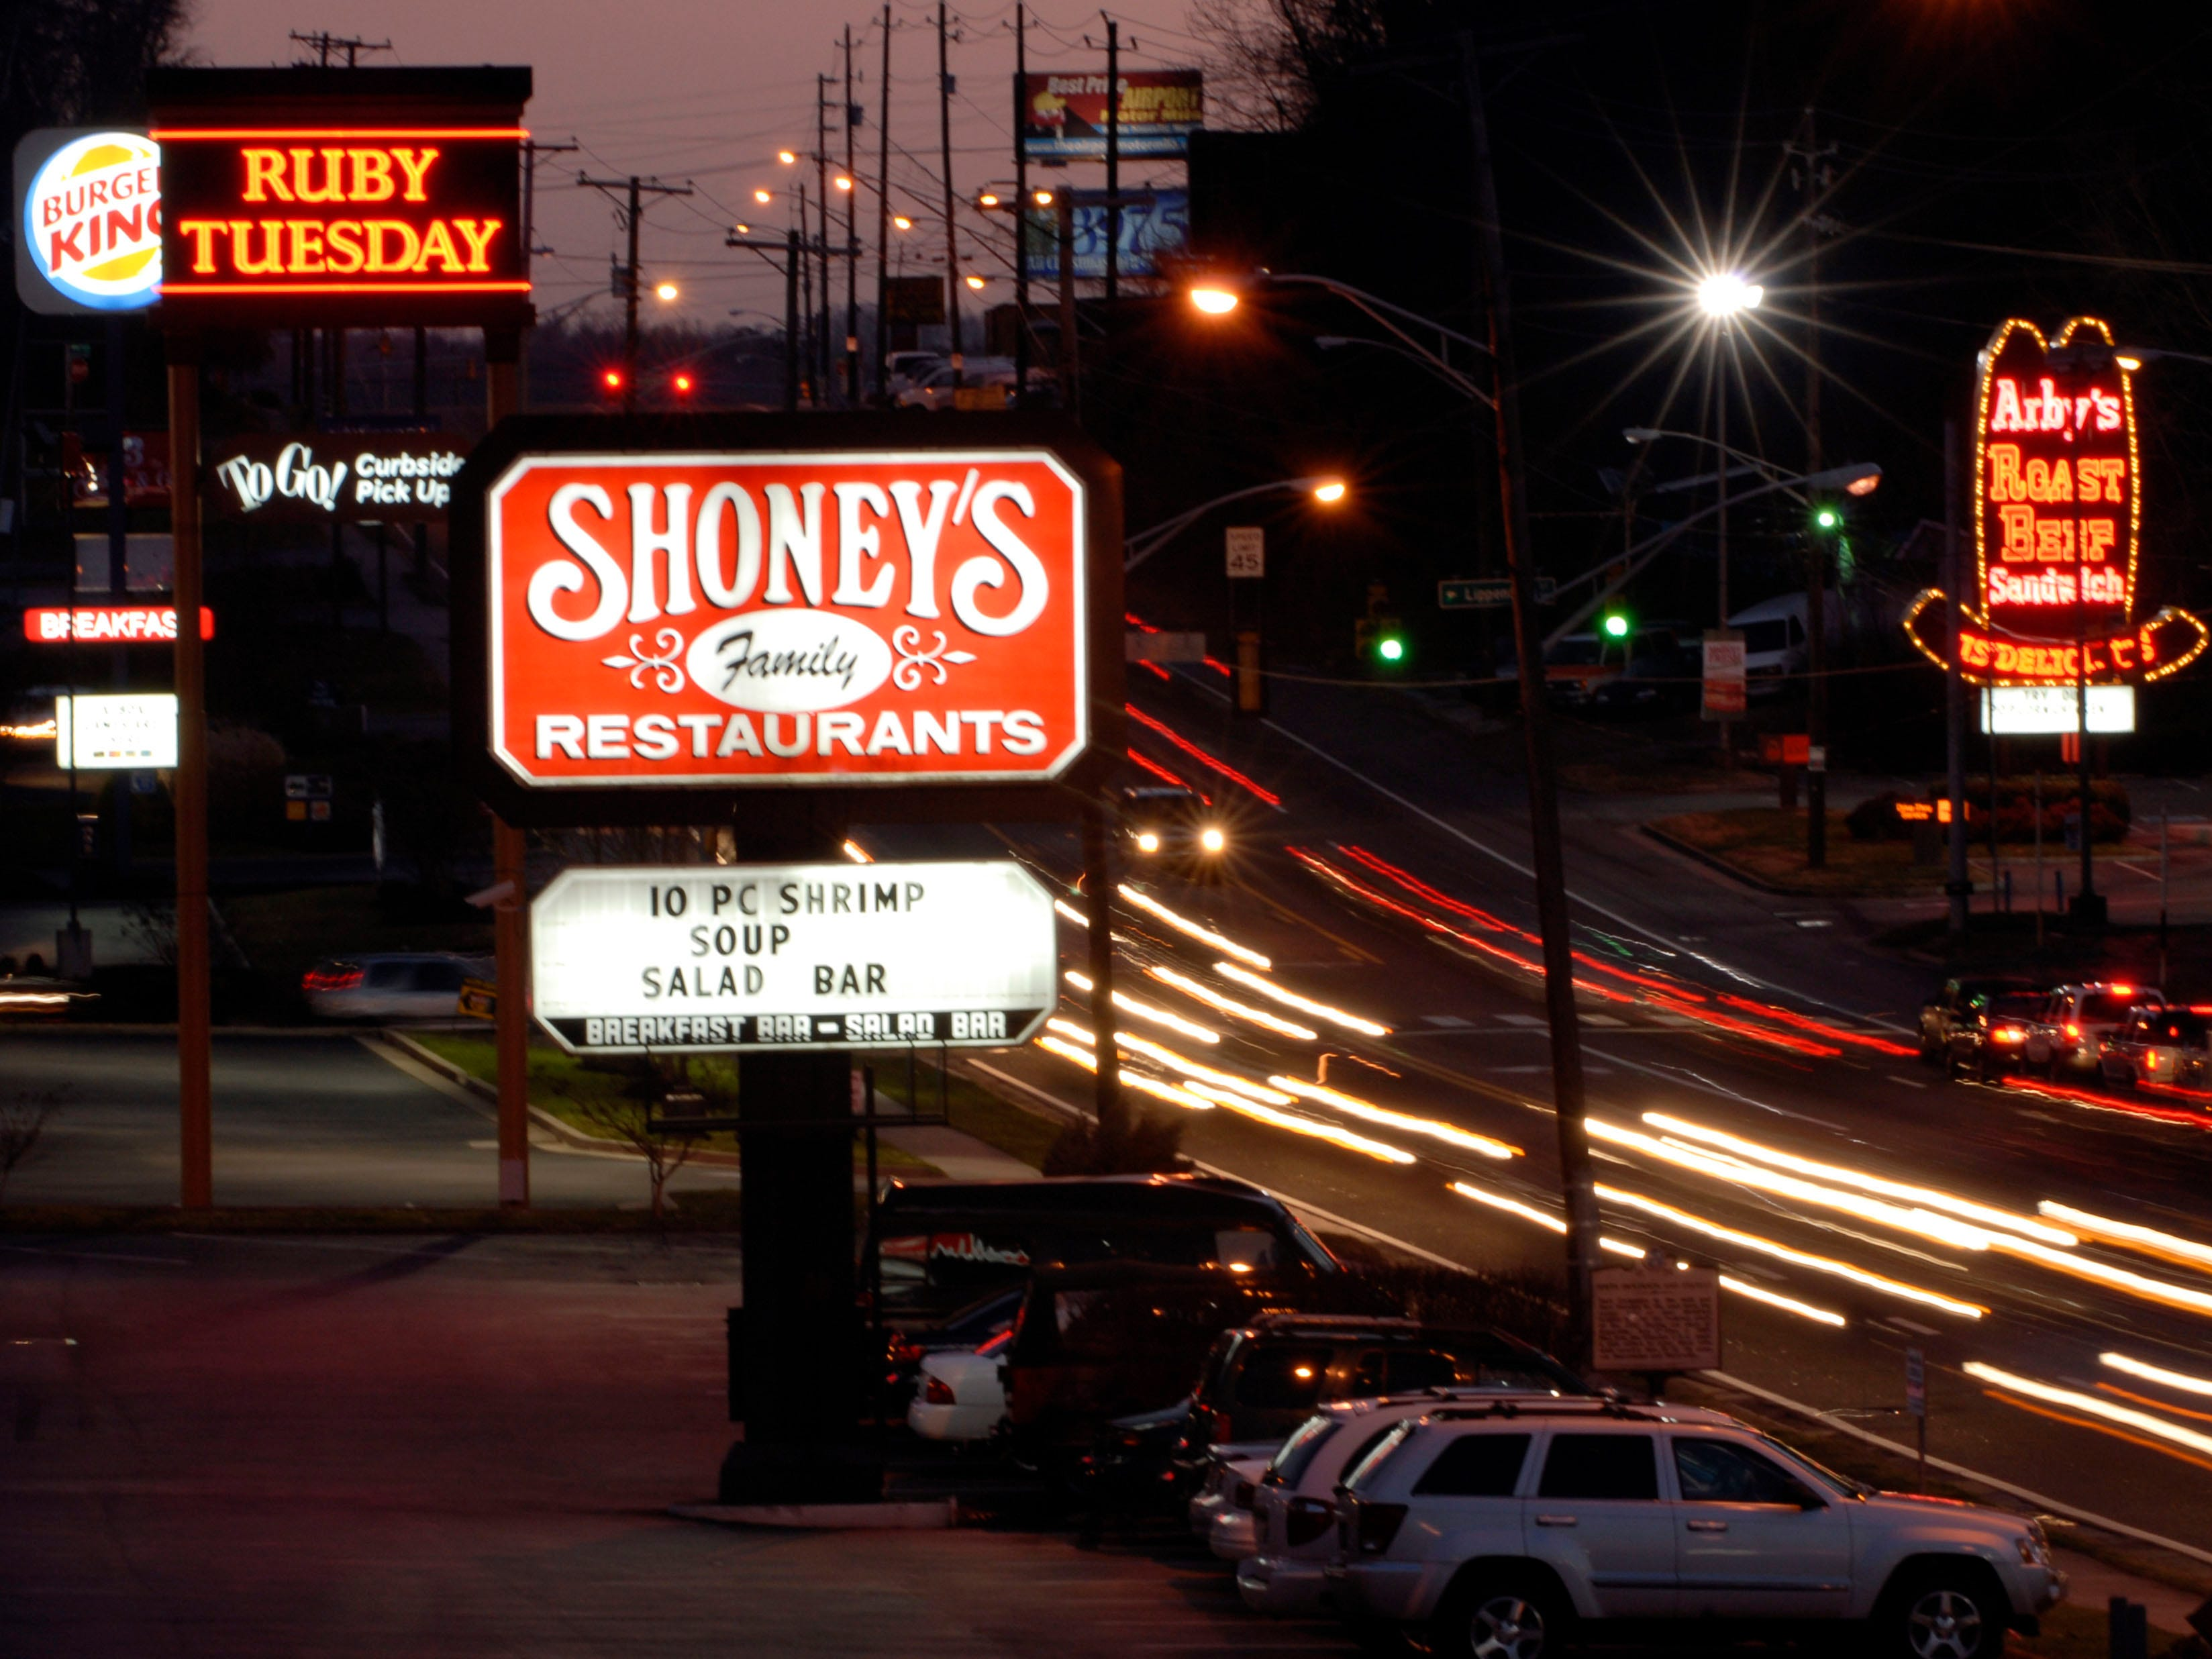 Business continues as usual at Shoney's on Chapman Highway in 2007 after it was announced that Royal Hospitality Corp., which operates Church's Chicken restaurants, is acquiring Shoney's Restaurants. The Atlanta-based company will take over all 282 Shoney's restaurants from Shoney's LLC, but the restaurants will continue under the name Shoney's.